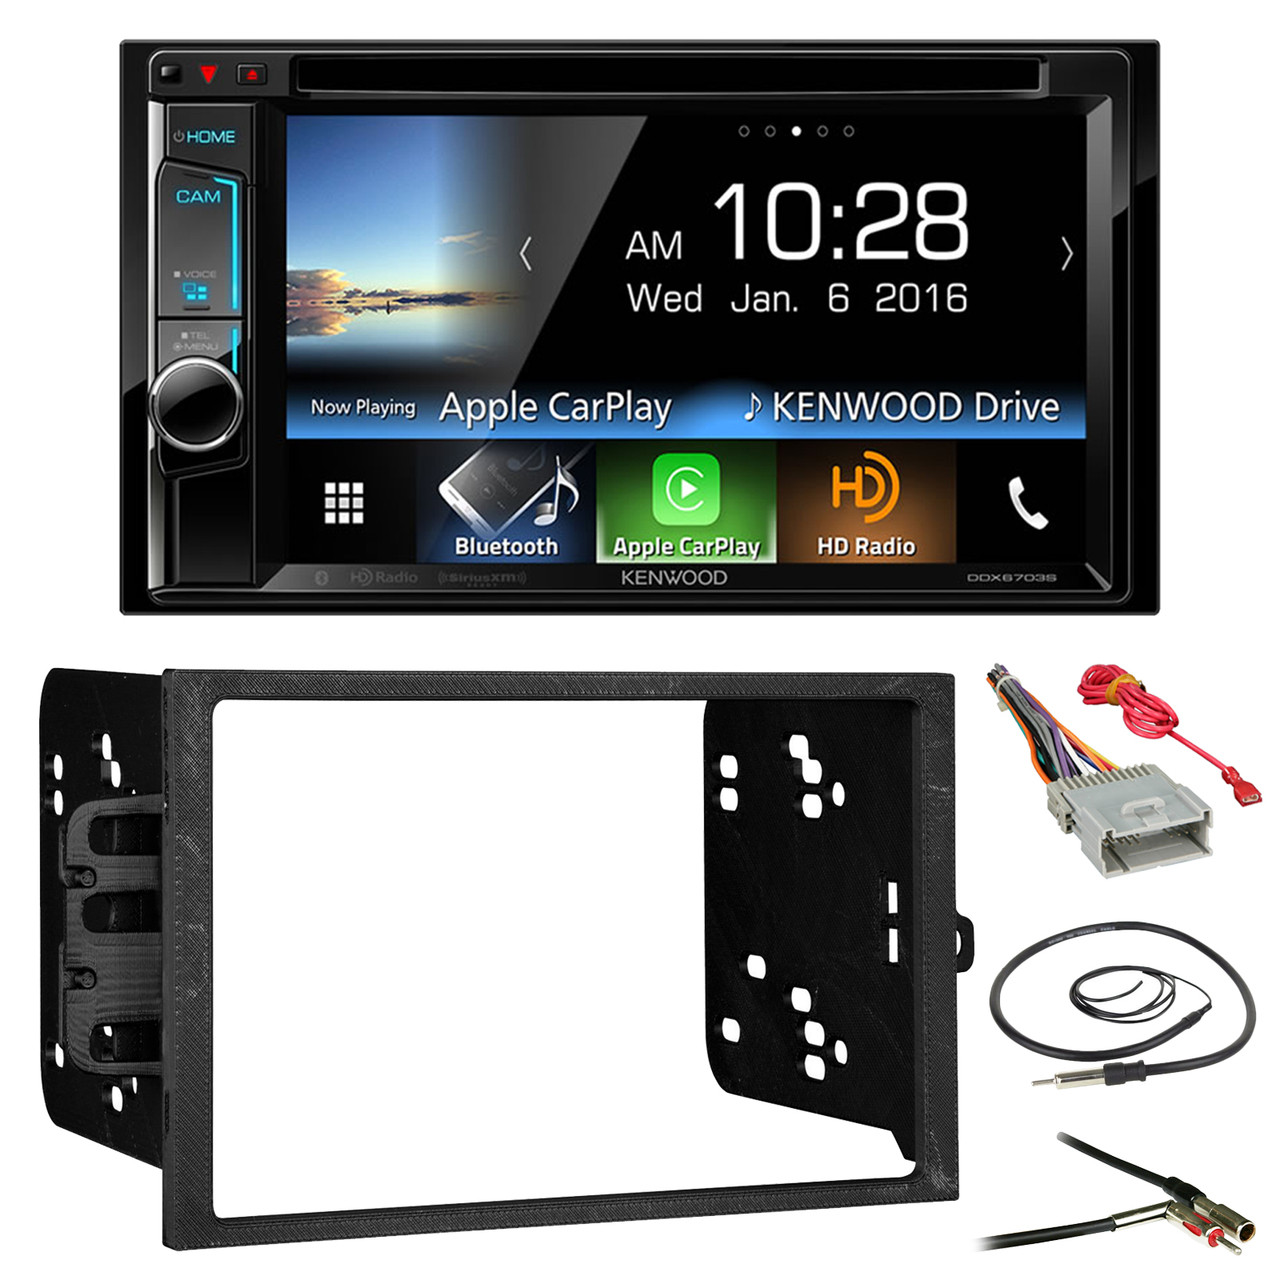 Kenwood Ddx6703s 62 Double Din Cd Dvd Bluetooth Car Stereo Metra Wire Harness Receiver Bundle Combo With